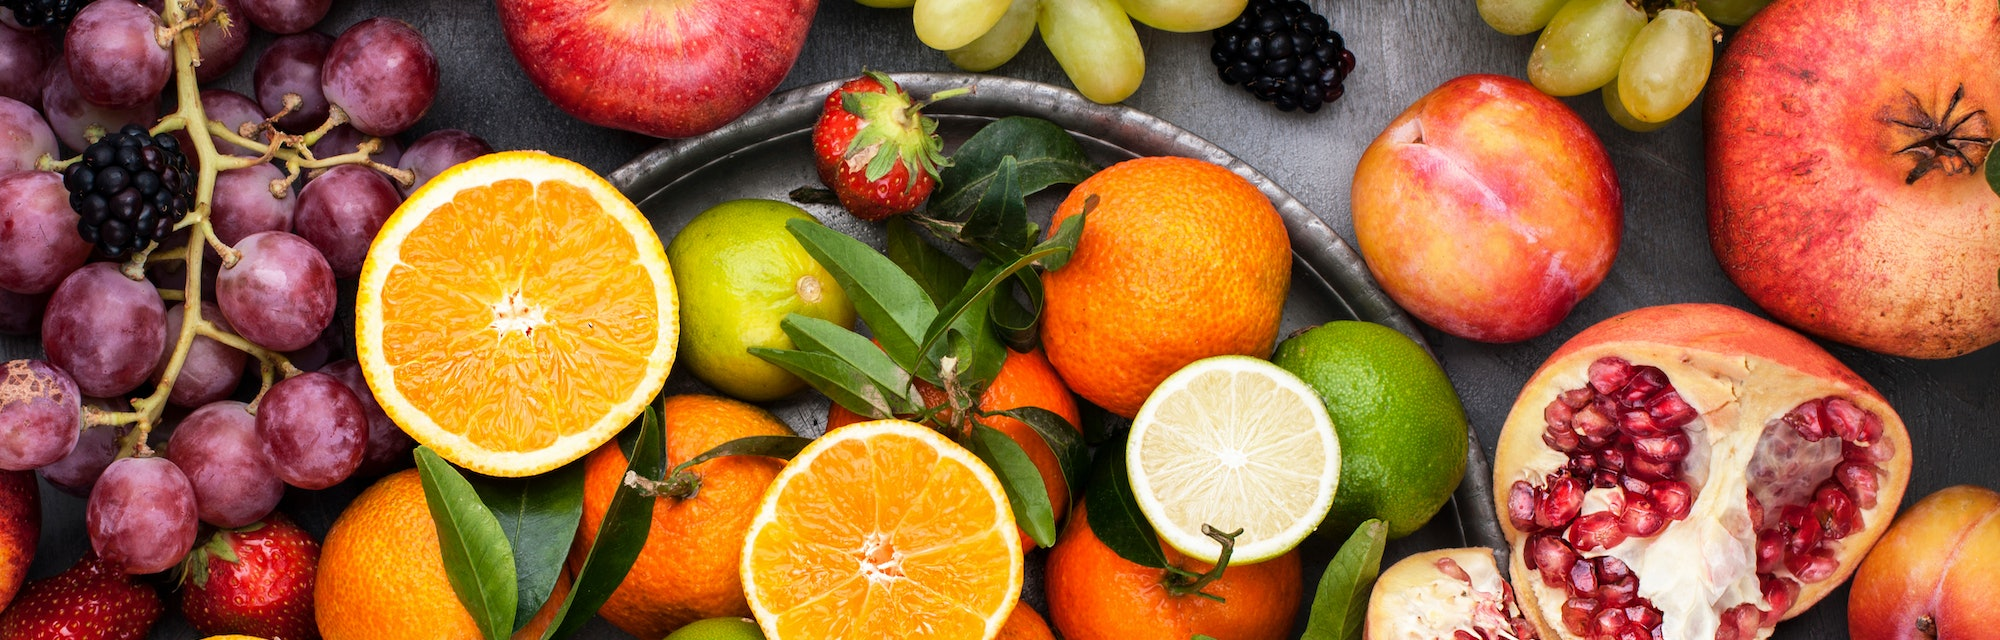 Assorted fruits. Different fruits on a gray background, the whole surface is covered with citrus fru...